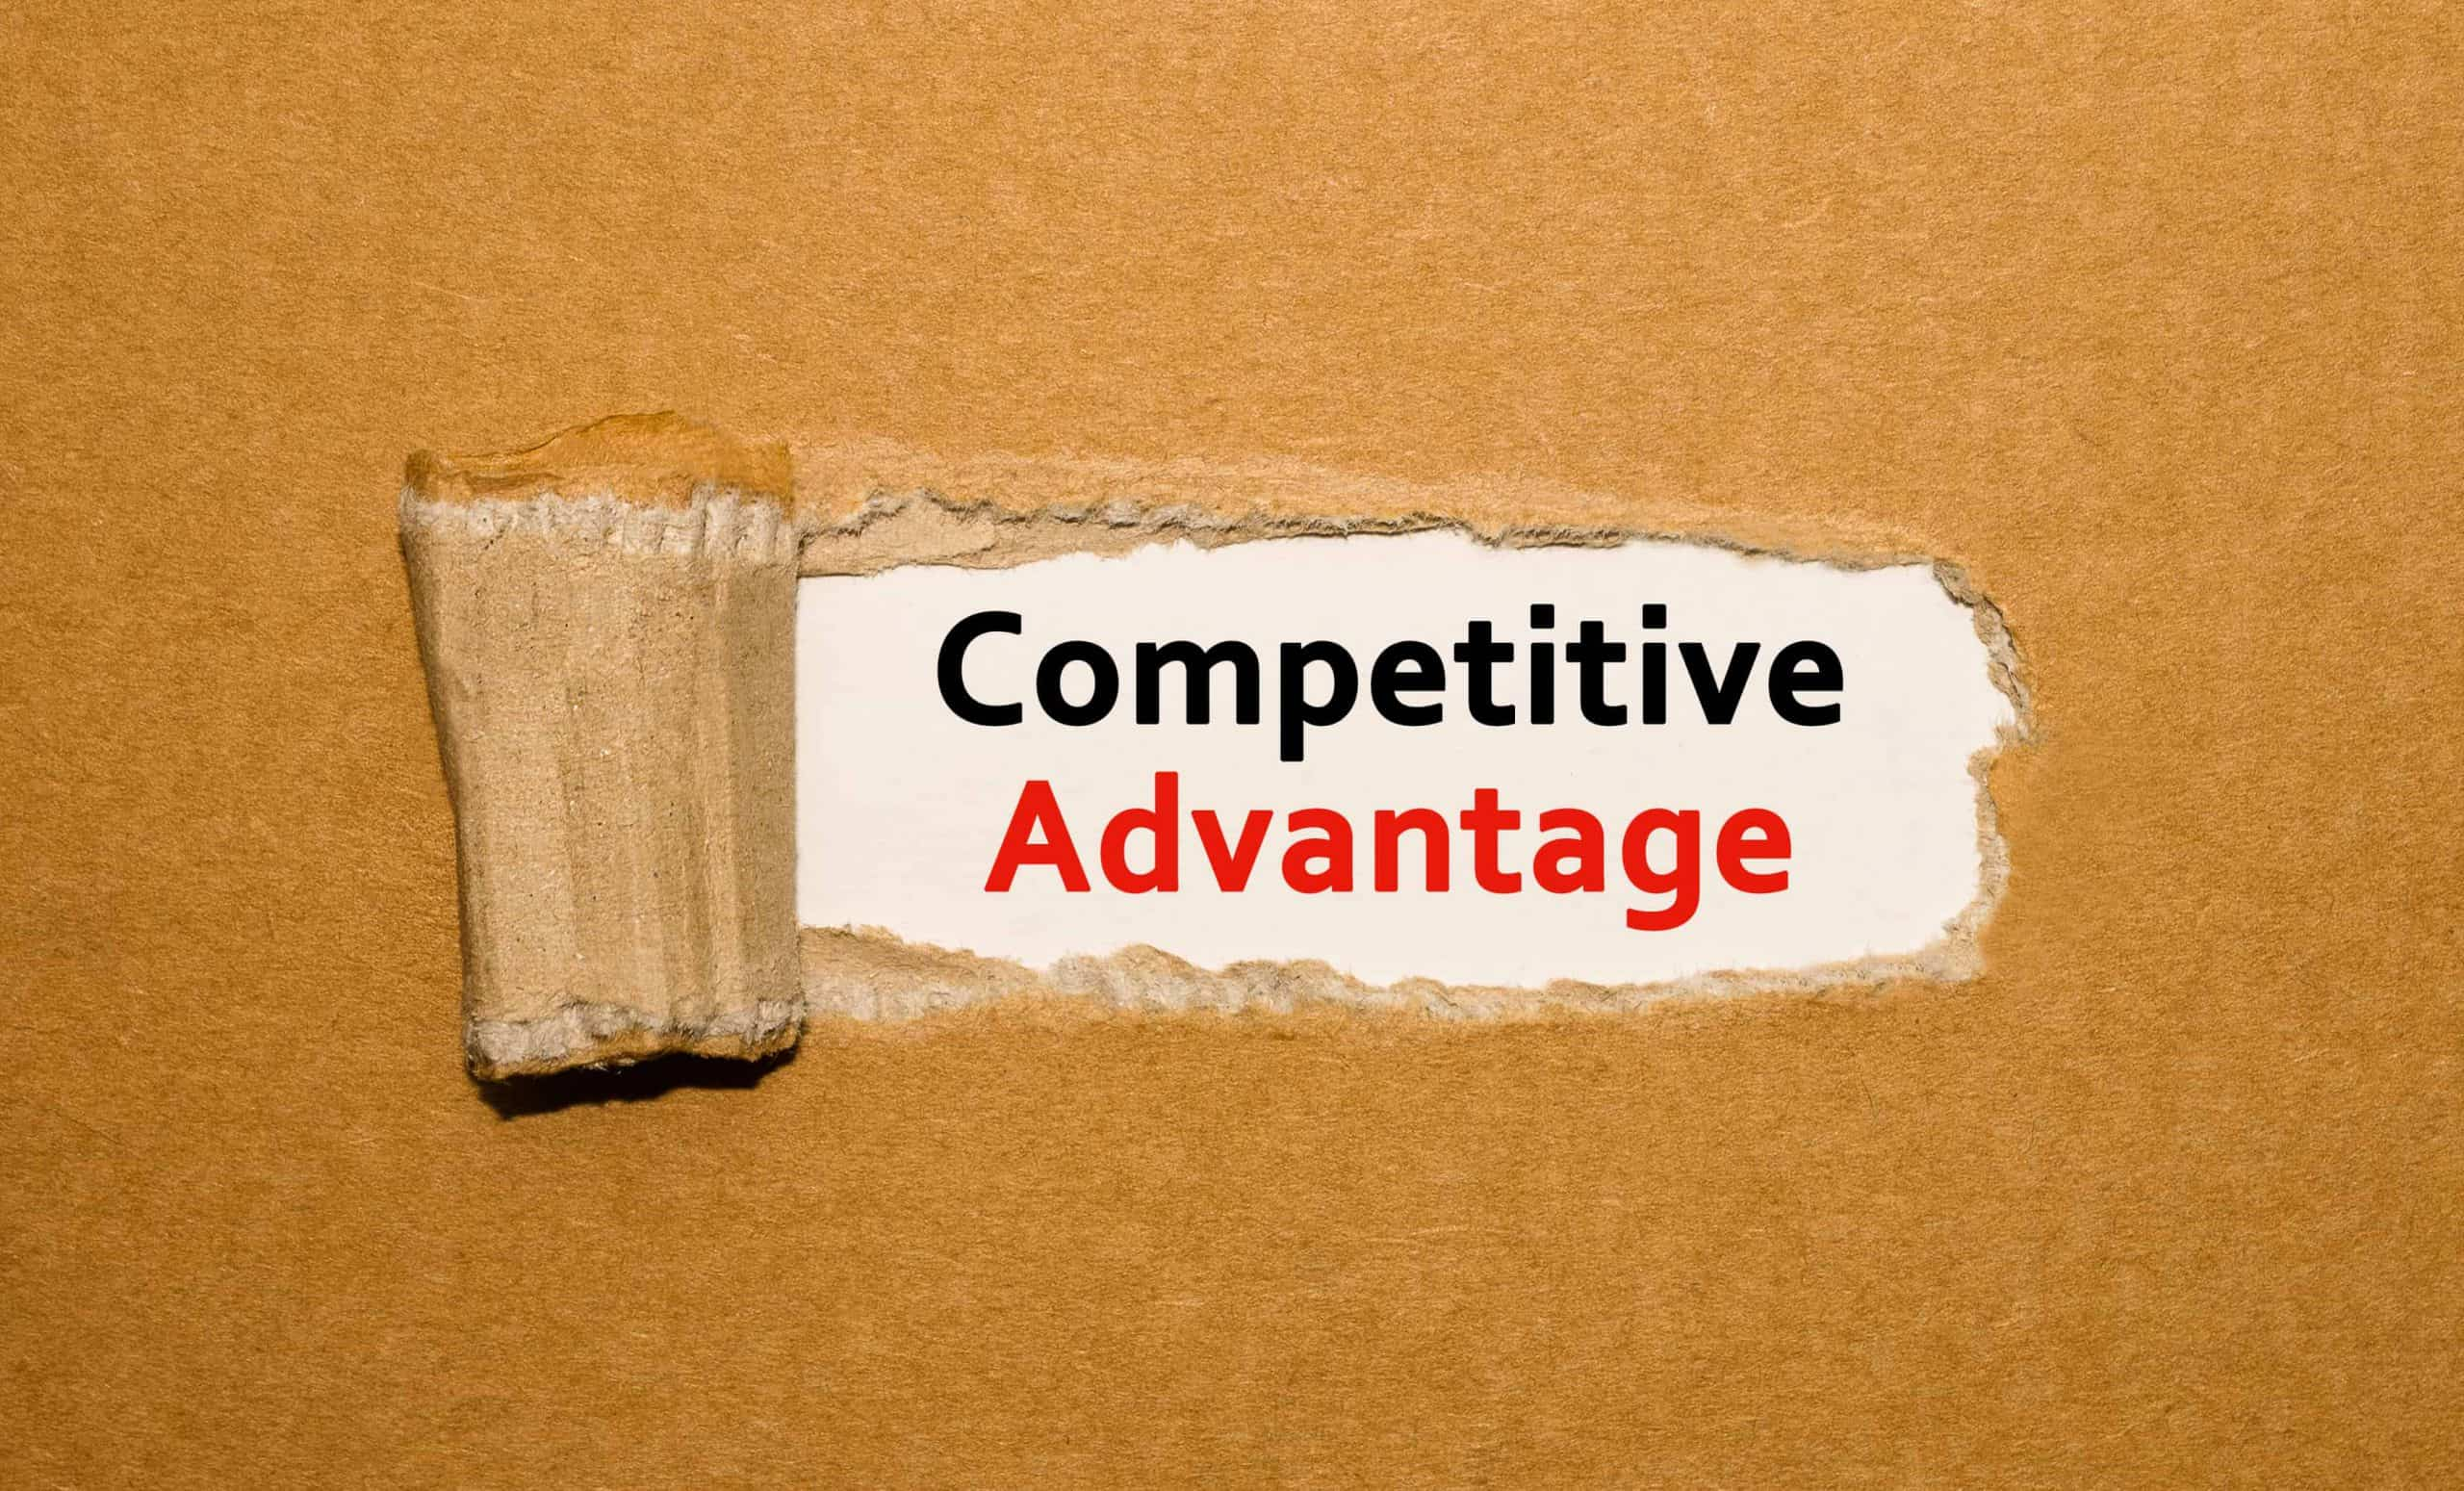 Strategic Sourcing - Suppliers: A Proven Competitive Advantage You May be Overlooking